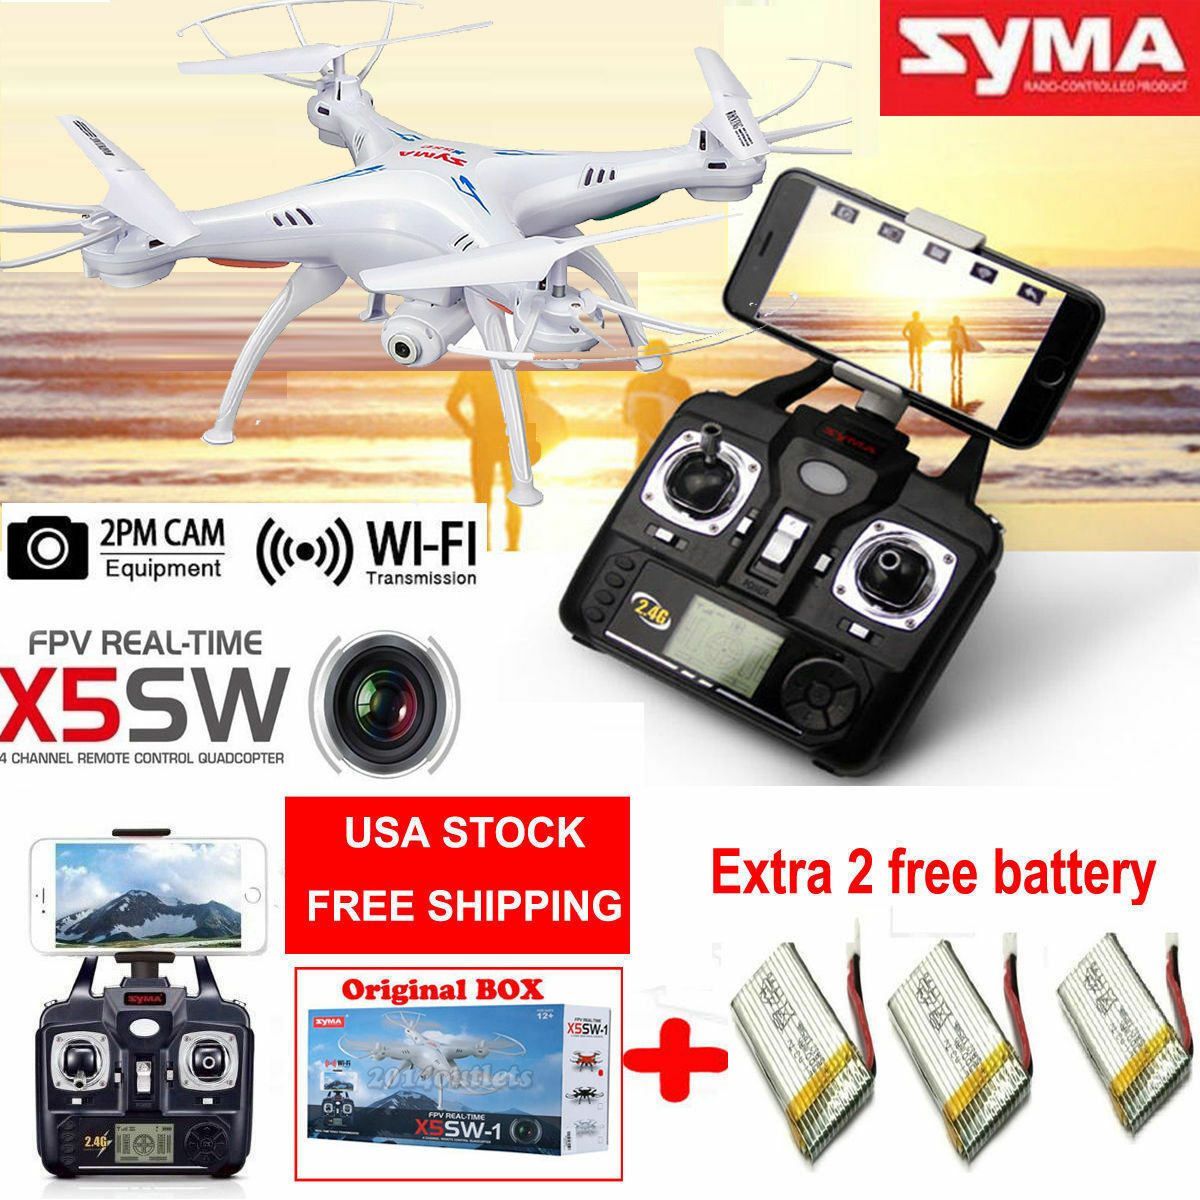 Syma X20 24ghz Rc Quadcopter Drone 2mp Hd Camera Rtf Headless Mode X8c Venture 4ch With 2 Mp Full White 3 Batteries 1 Of 12free Shipping